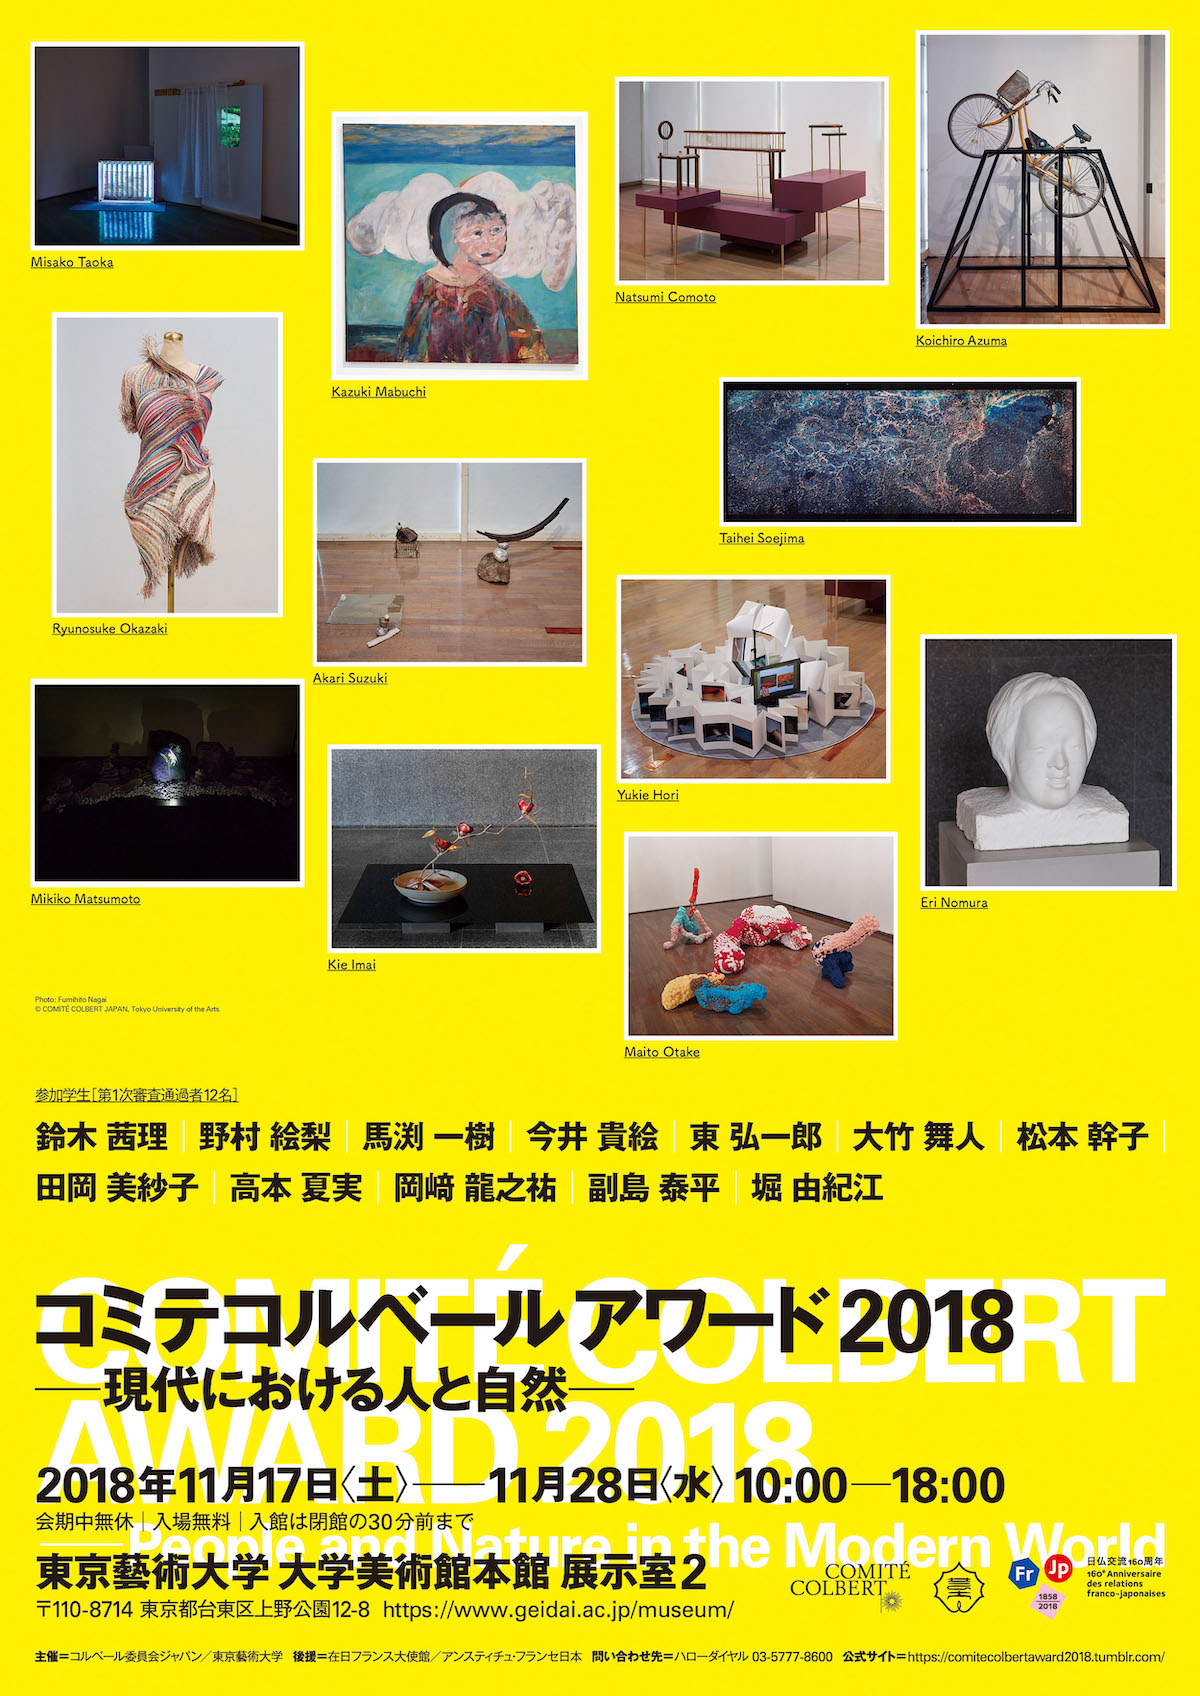 COMITÉ COLBERT AWARD 2018 Exhibition